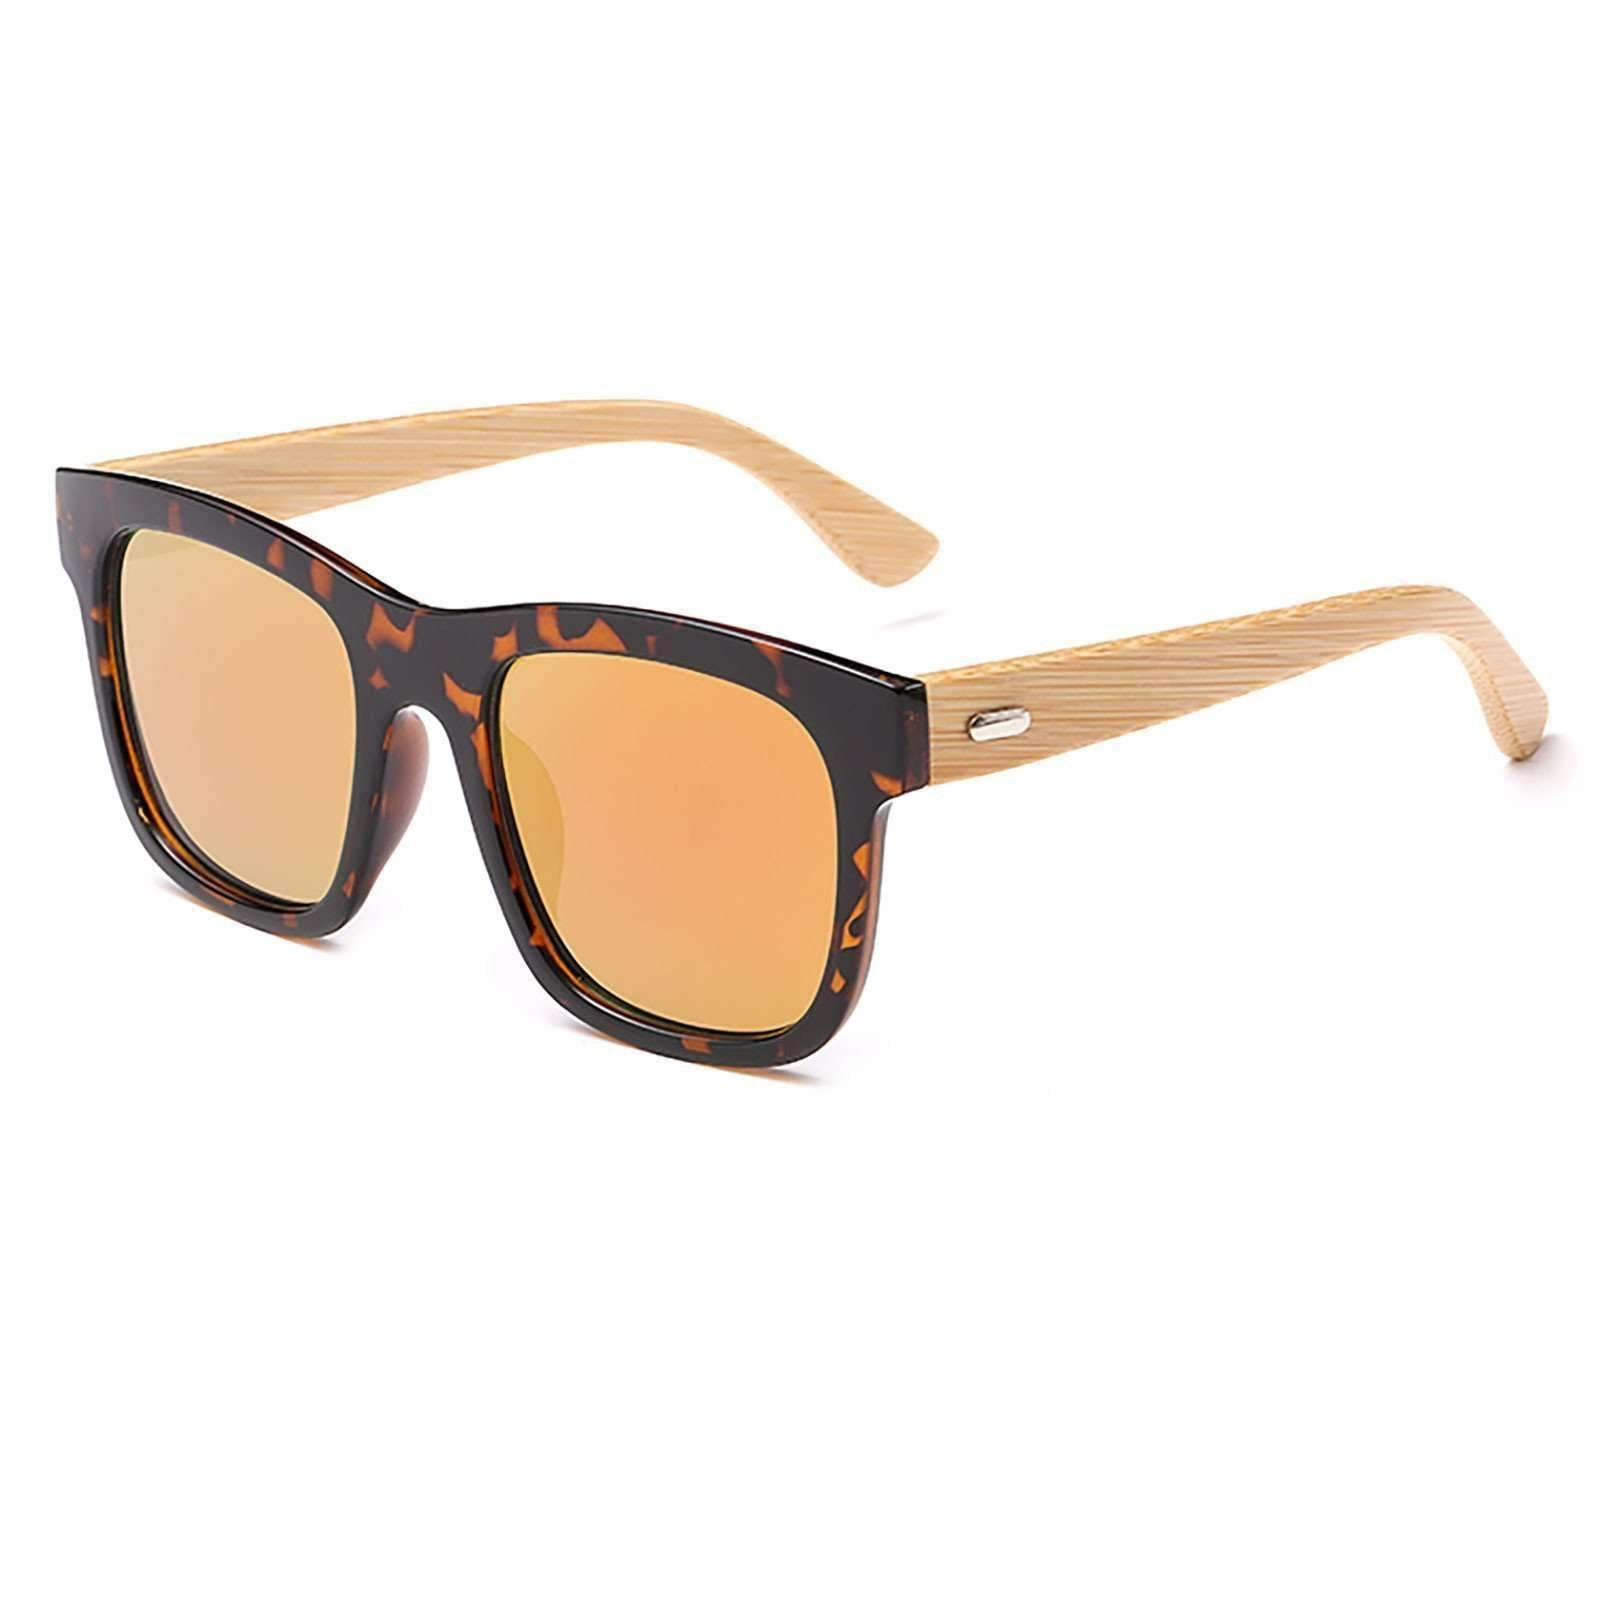 8059 - Oversize Squared Tortoise Two-Tone Wood Sunglasses